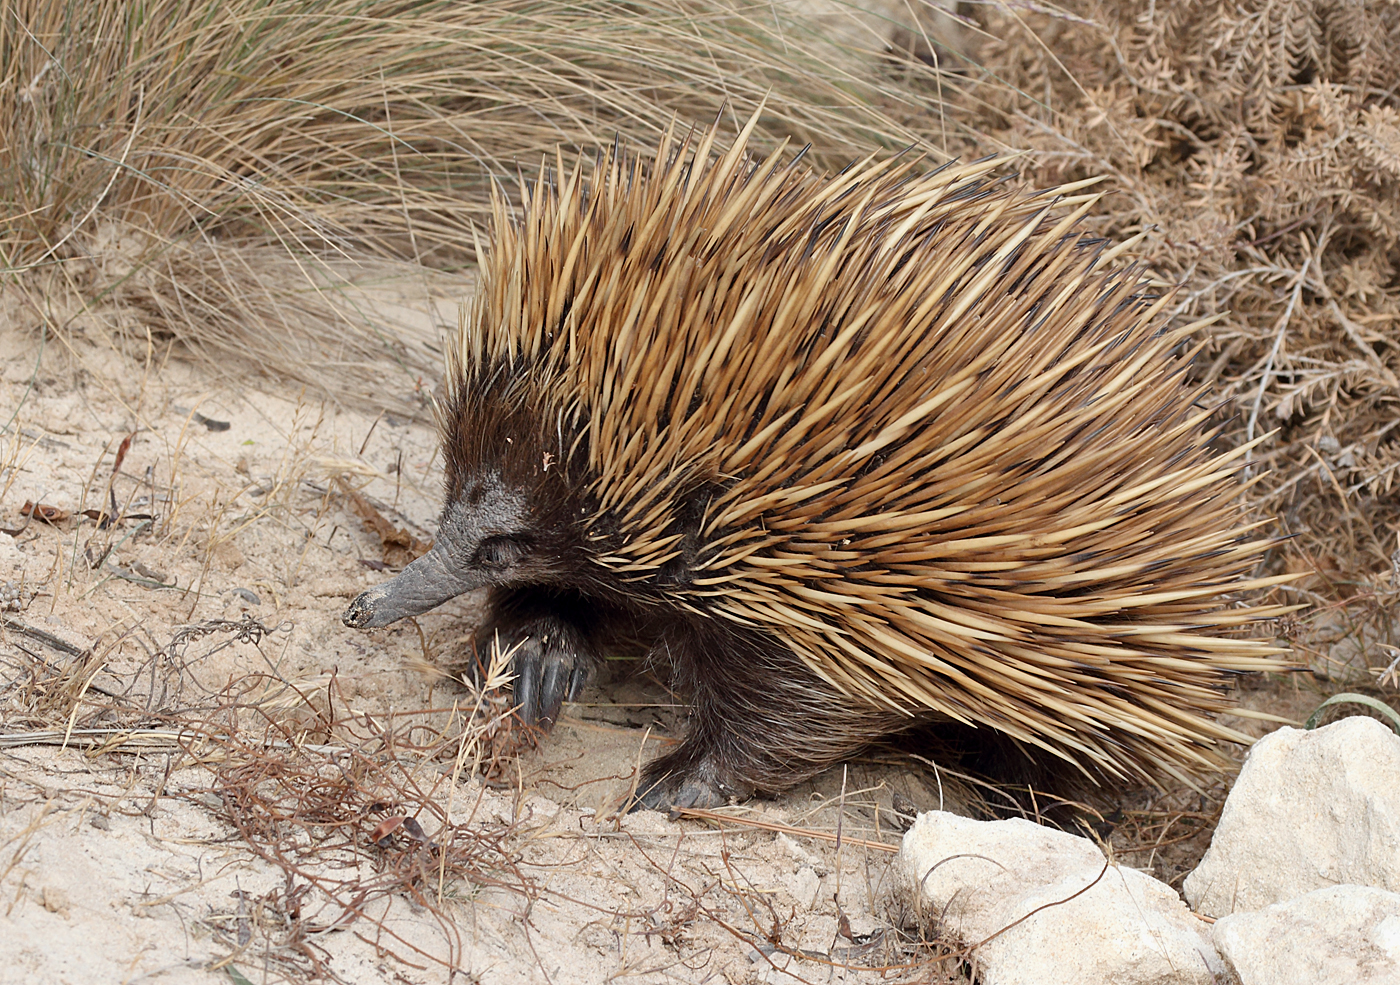 Echidna, Platypus and Mammals on Pinterest